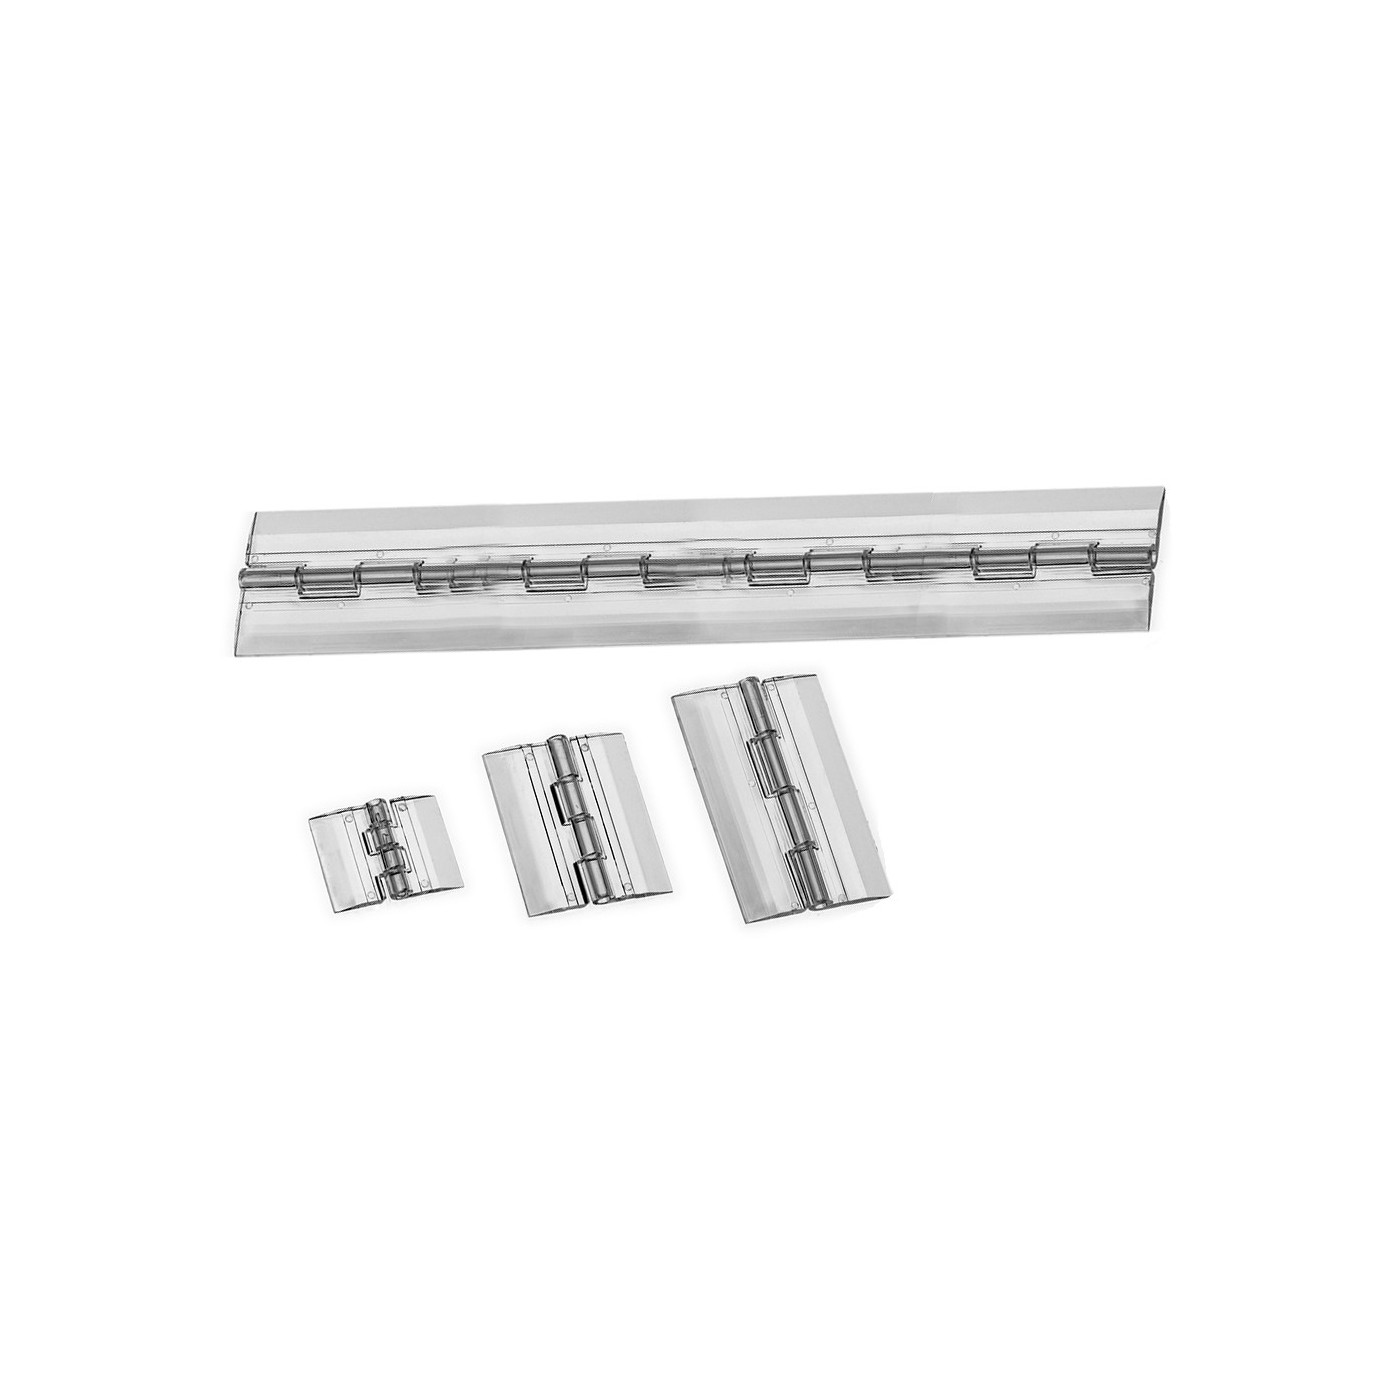 Set of 5 plastic hinges, transparent, 200x42 mm